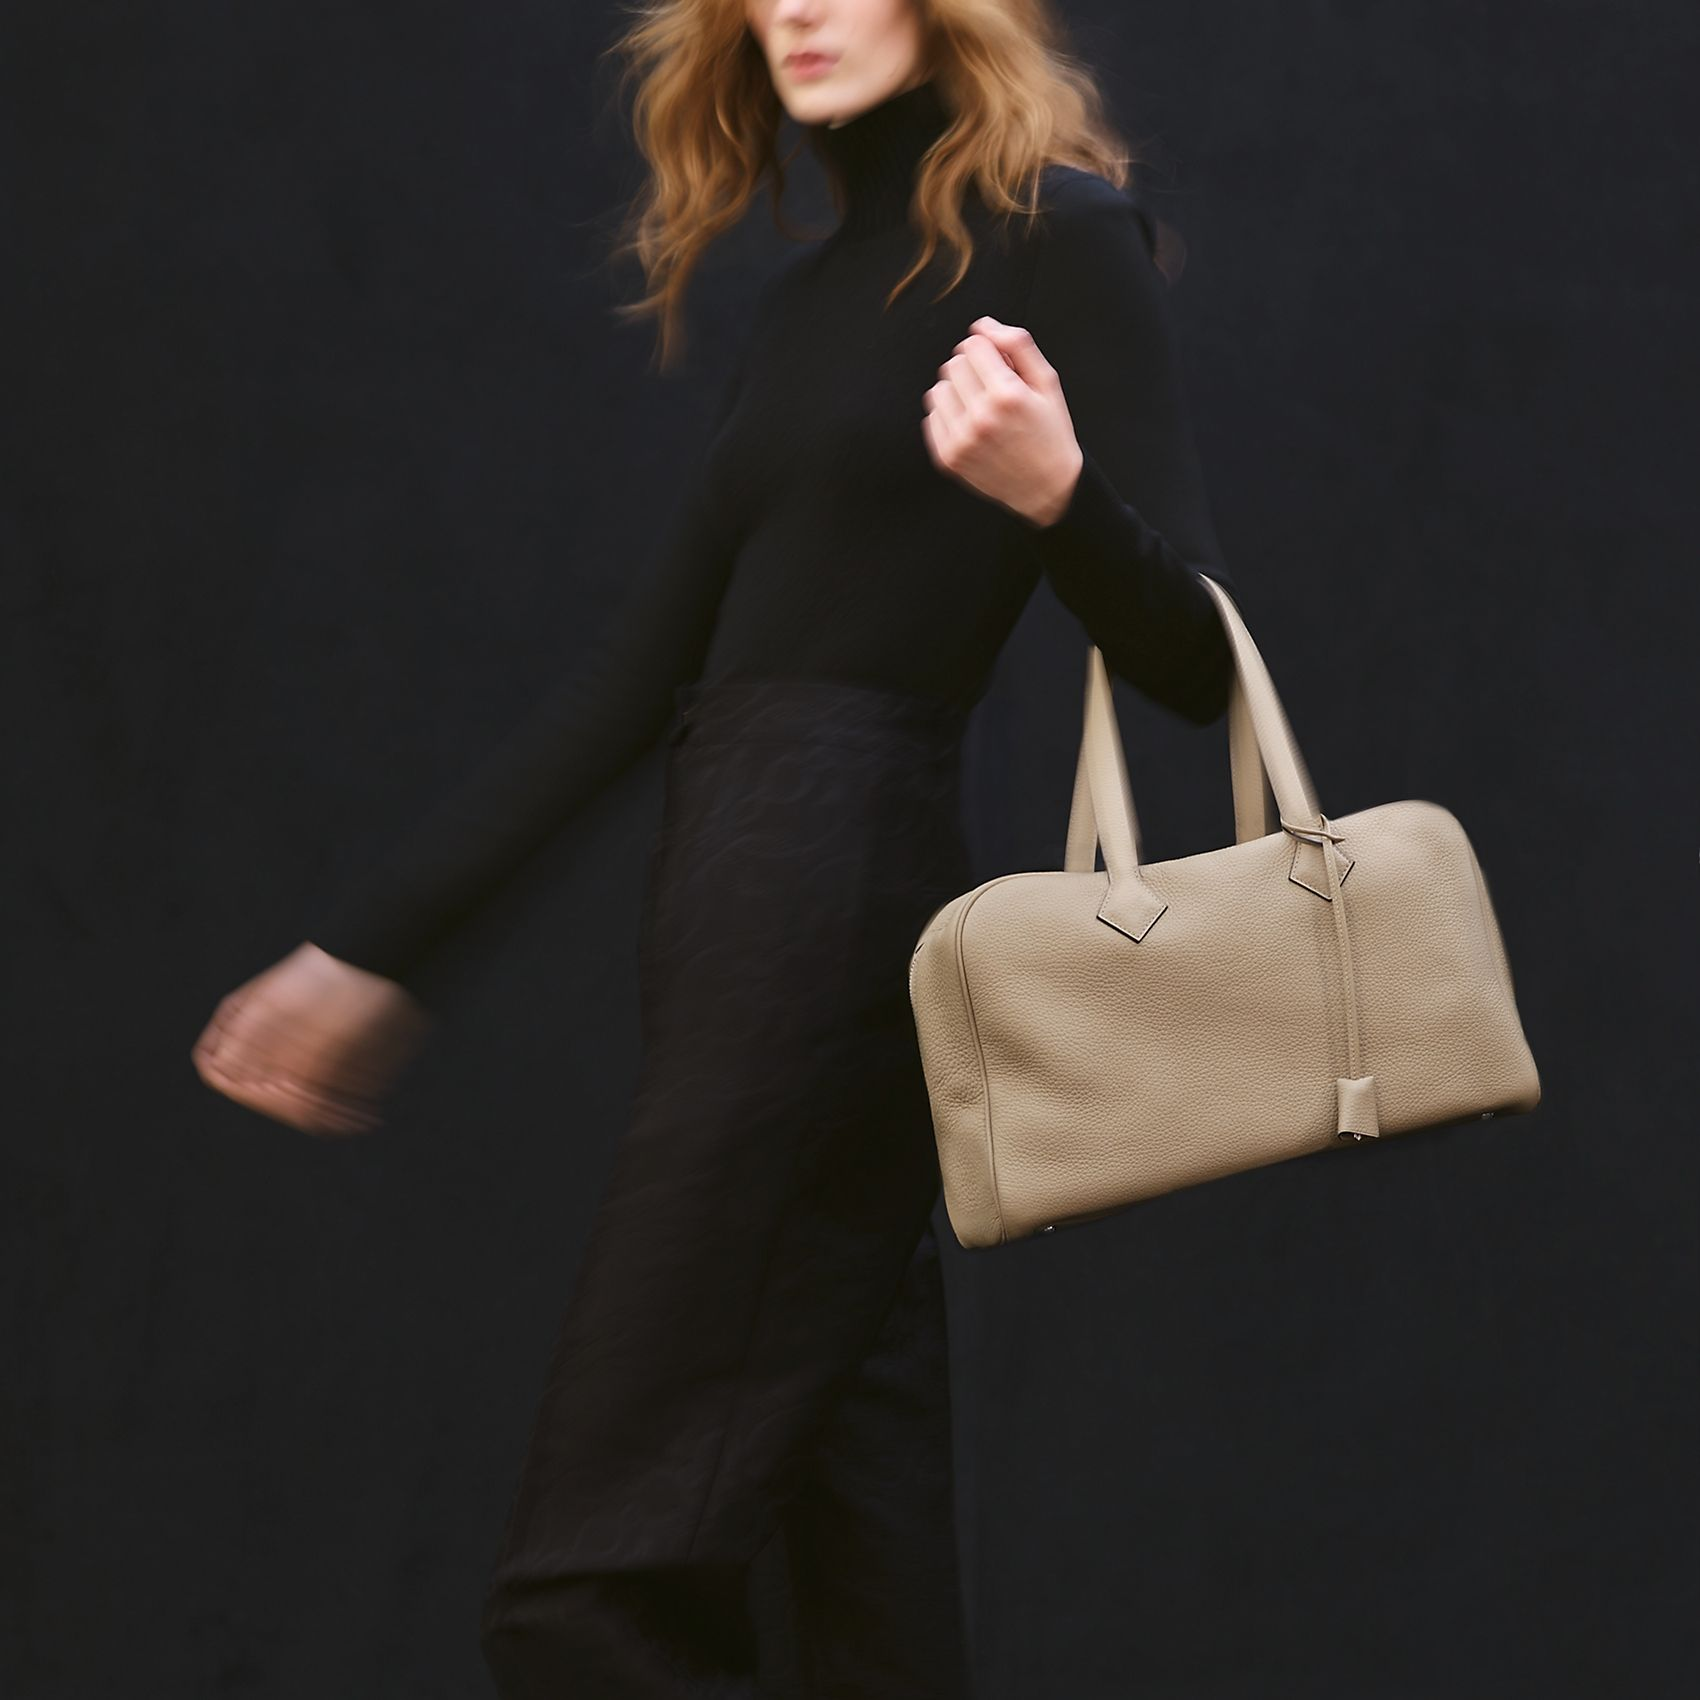 Mushroom-Based Leather Bags by Hermès: Would You Buy It?